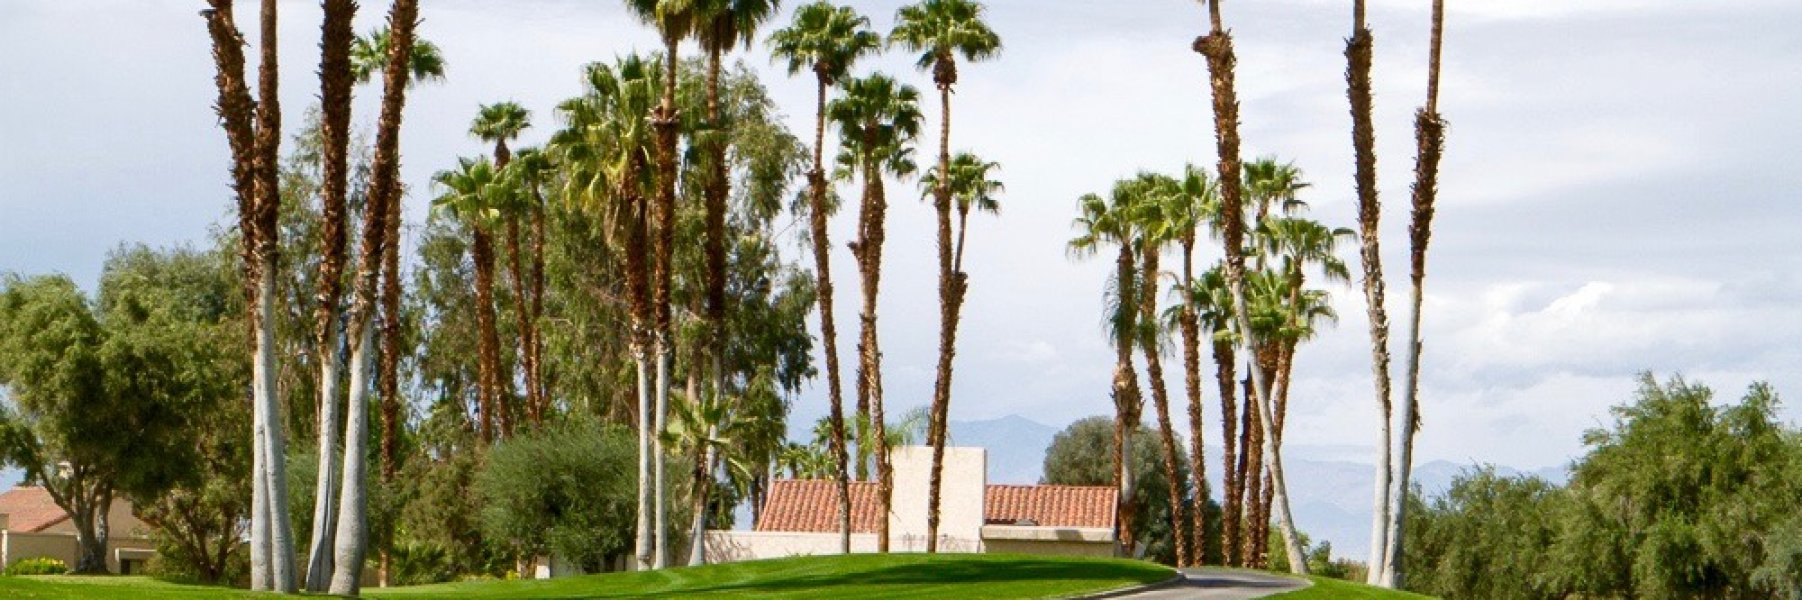 Mission Hills Legacy is a community of homes in Rancho Mirage California